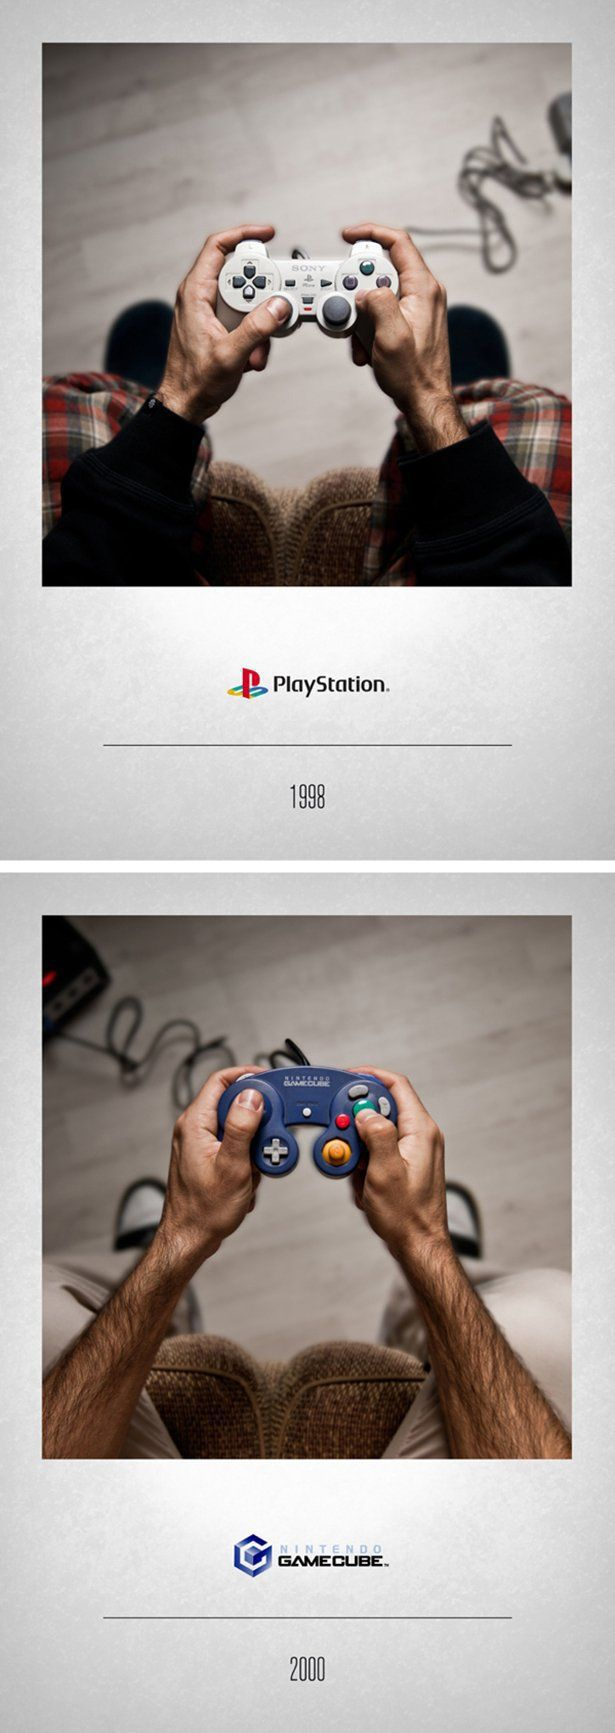 how_video_game_controllers_have_changed_over_the_years_640_high_11